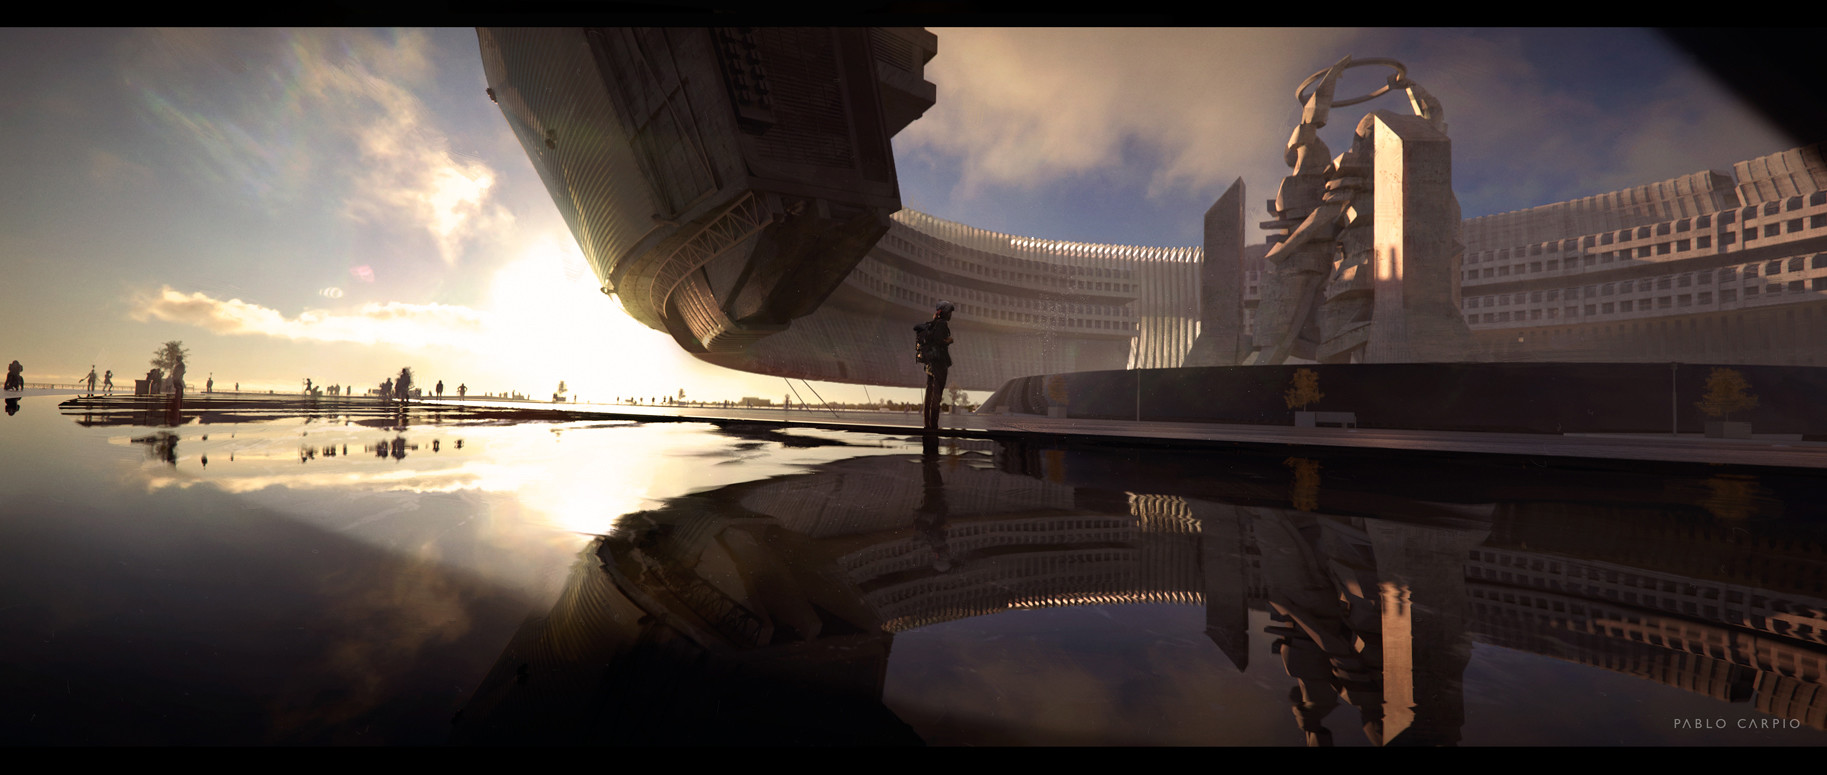 Pablo carpio learnsquared final 36 001